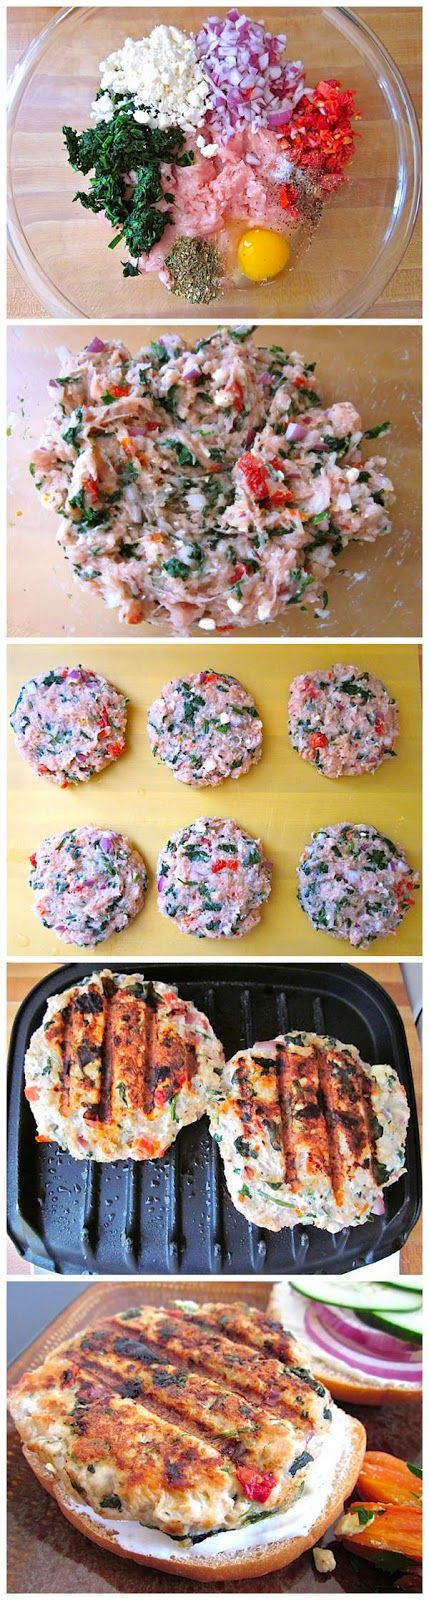 Greek Turkey Burgers. These were great! I had them with some hummus and cucumber dill yogurt dip - delicious.